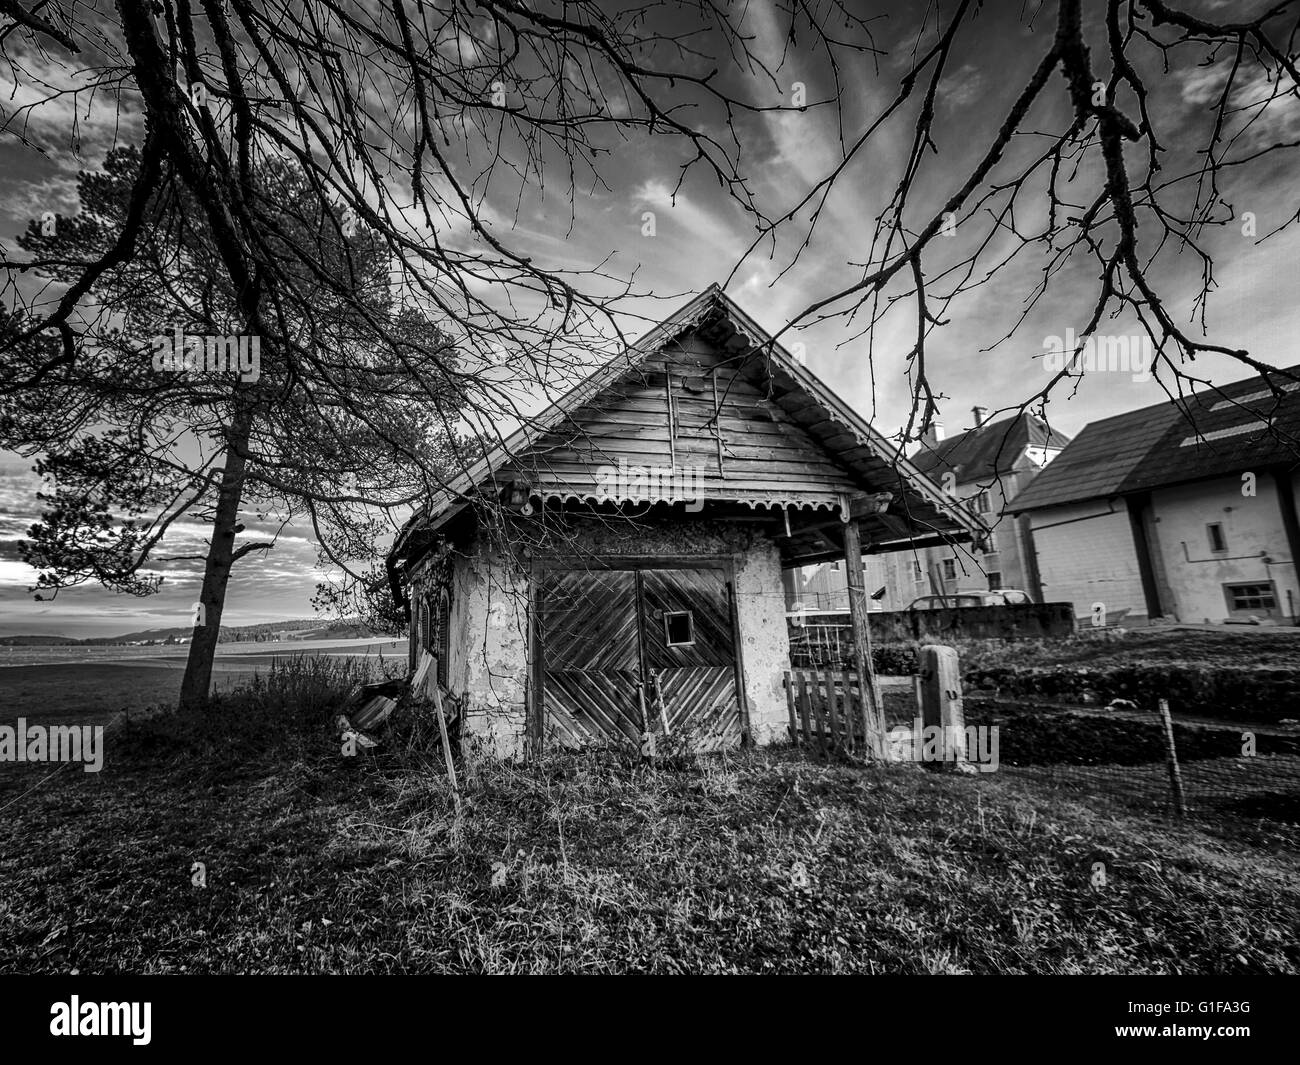 Black And White Cottage High Resolution Stock Photography And Images Alamy